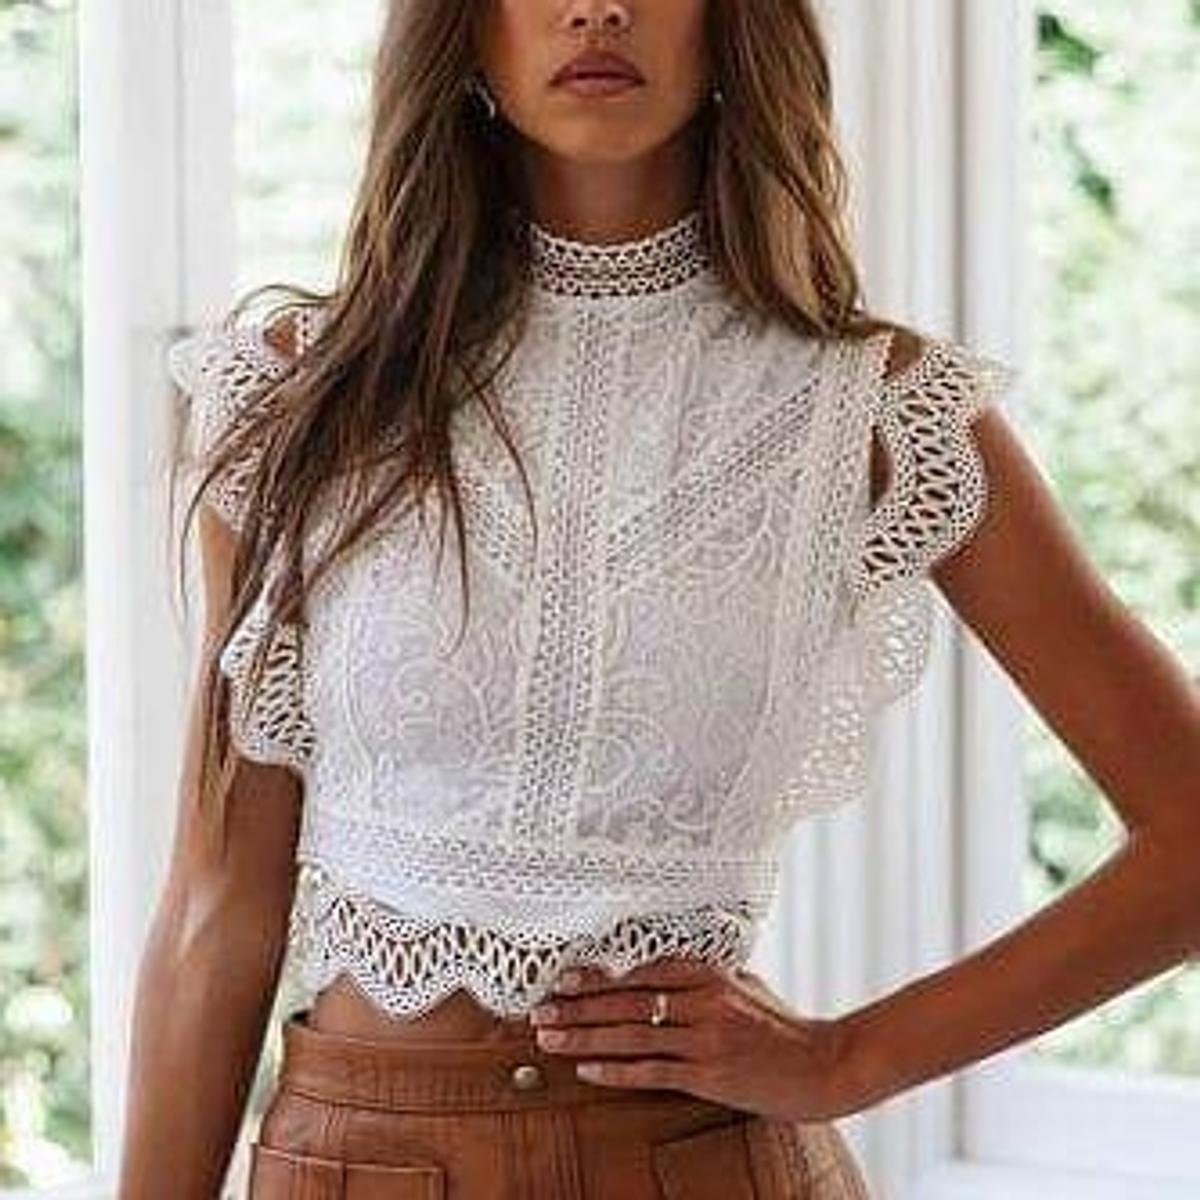 Striking lace and embroidery details, high neck, vintage look cropped top with rear zip facing Colour White Black Size 8/10 12/14 16/18 20/22 bu